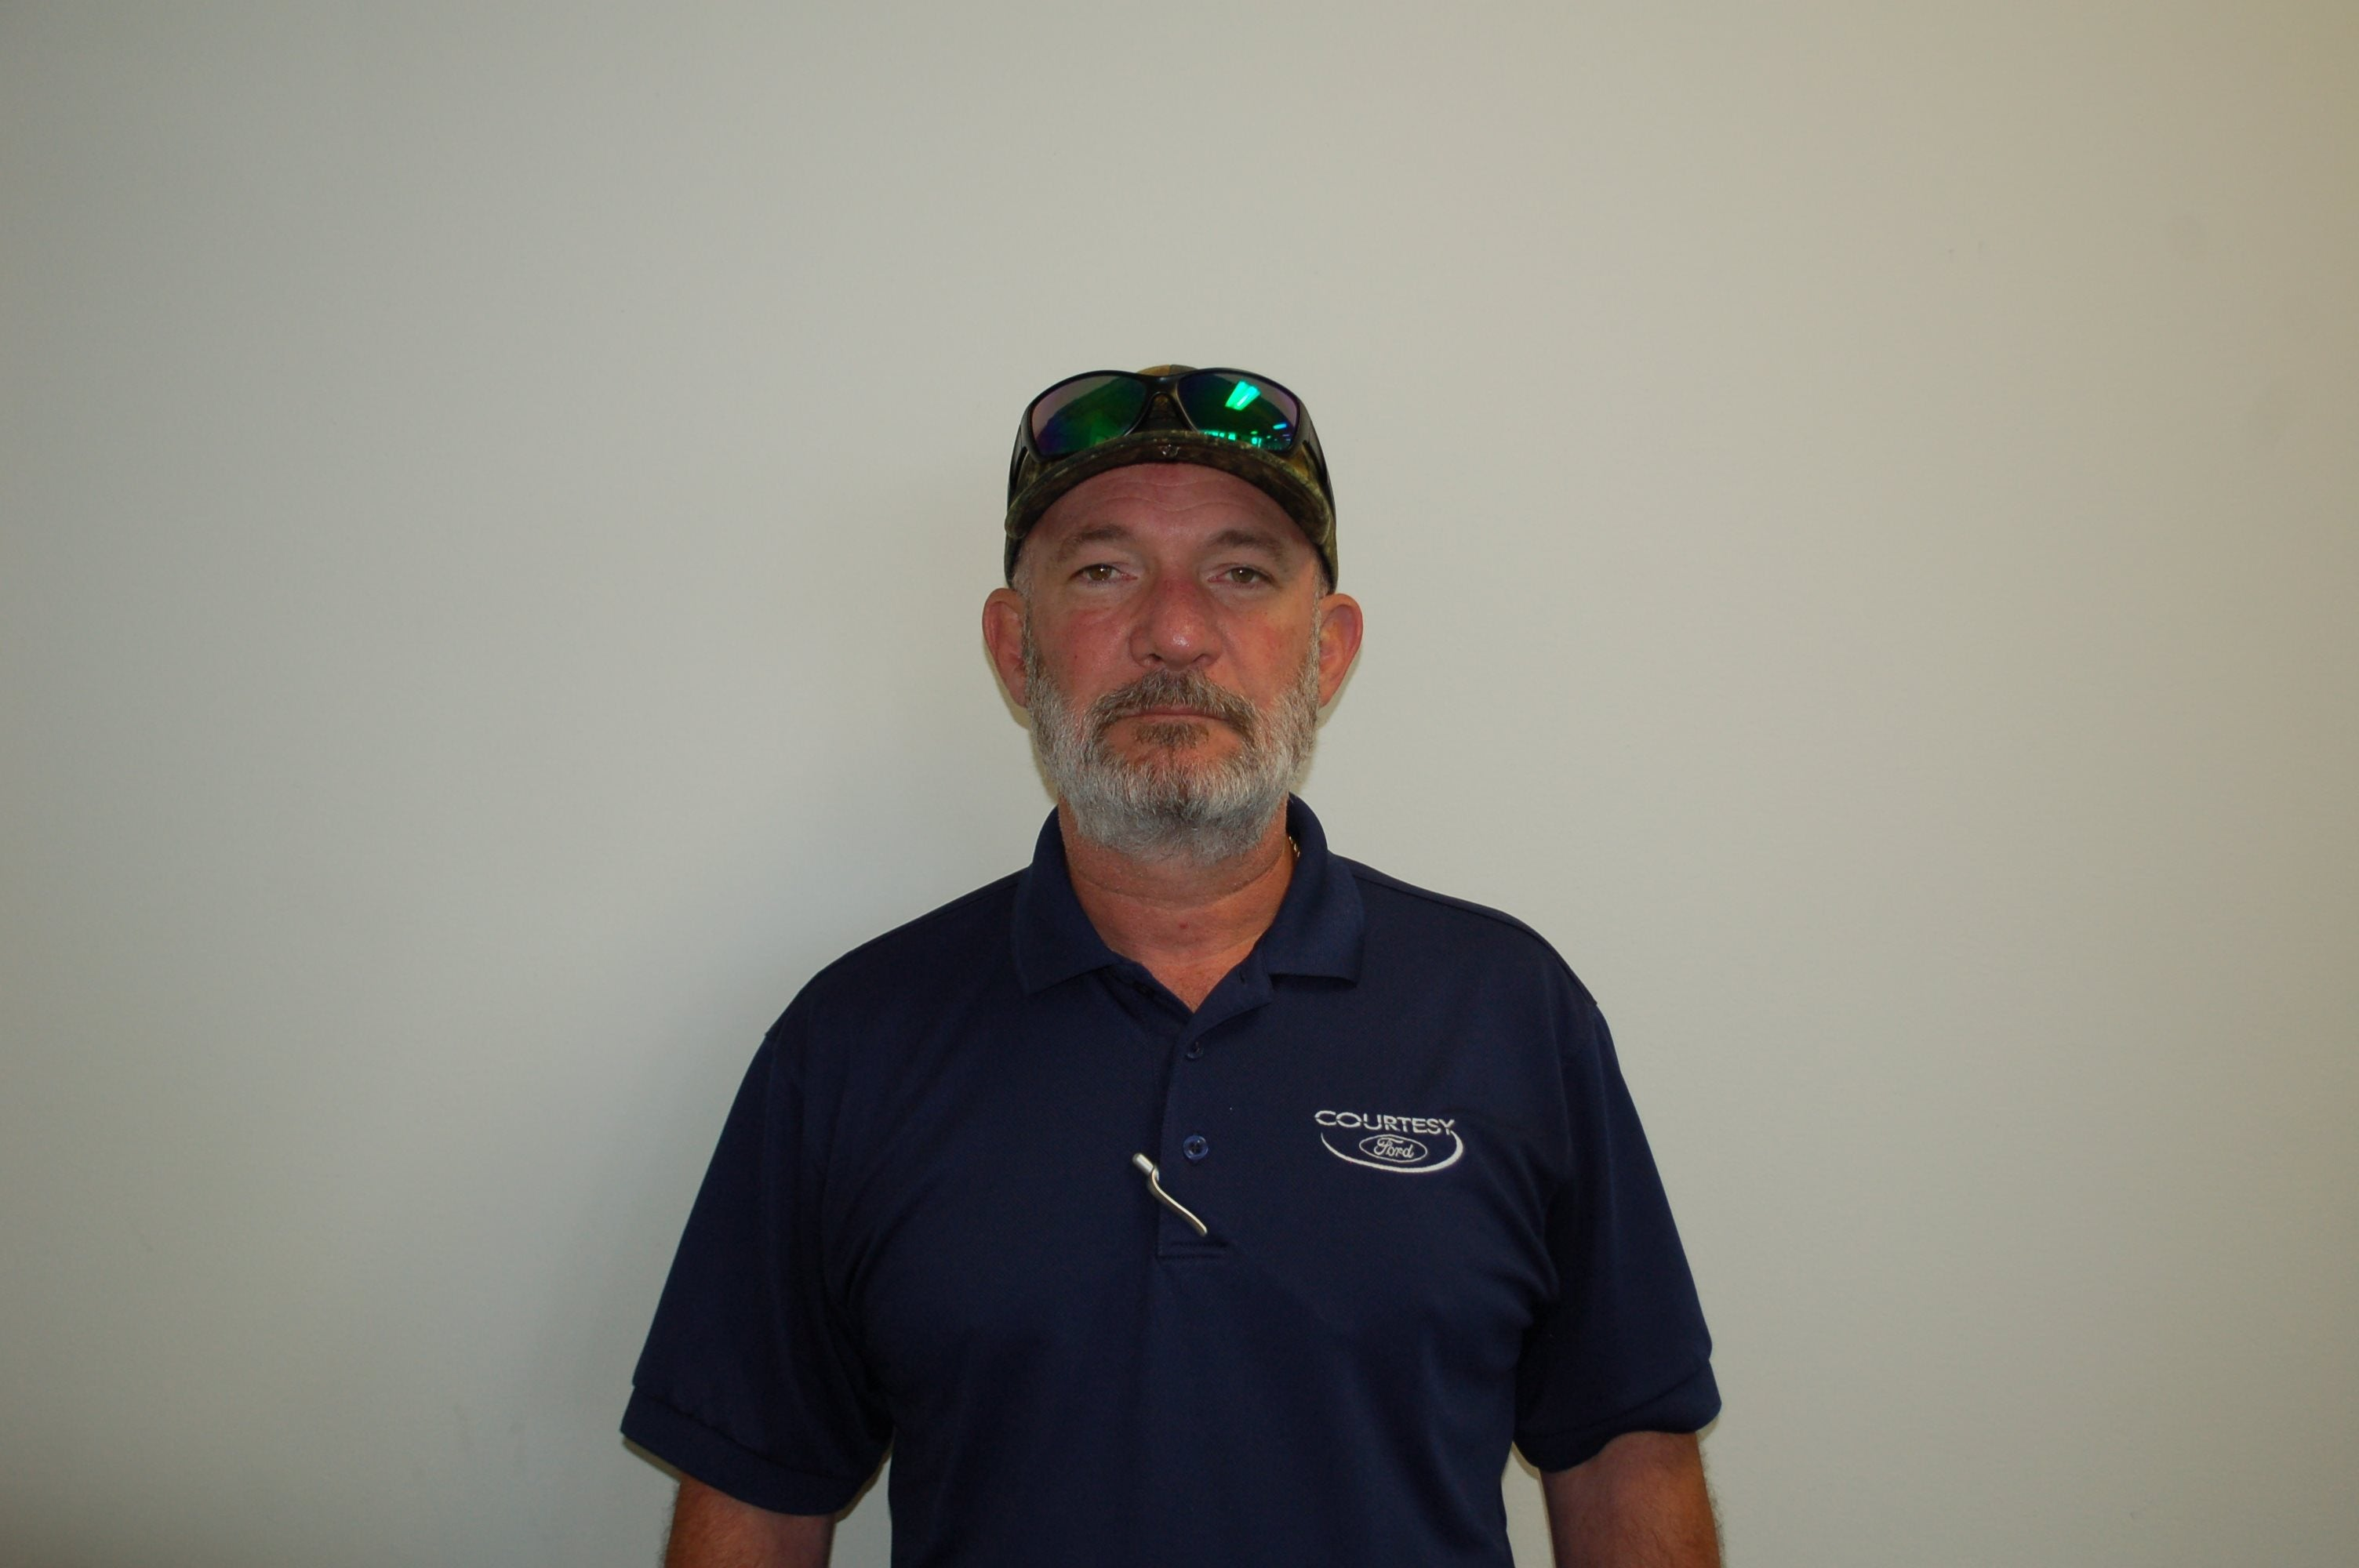 Courtesy Ford Conyers Ga >> Courtesy Ford Conyers Staff - Conyers Ford dealer in Conyers GA - New and Used Ford dealership ...